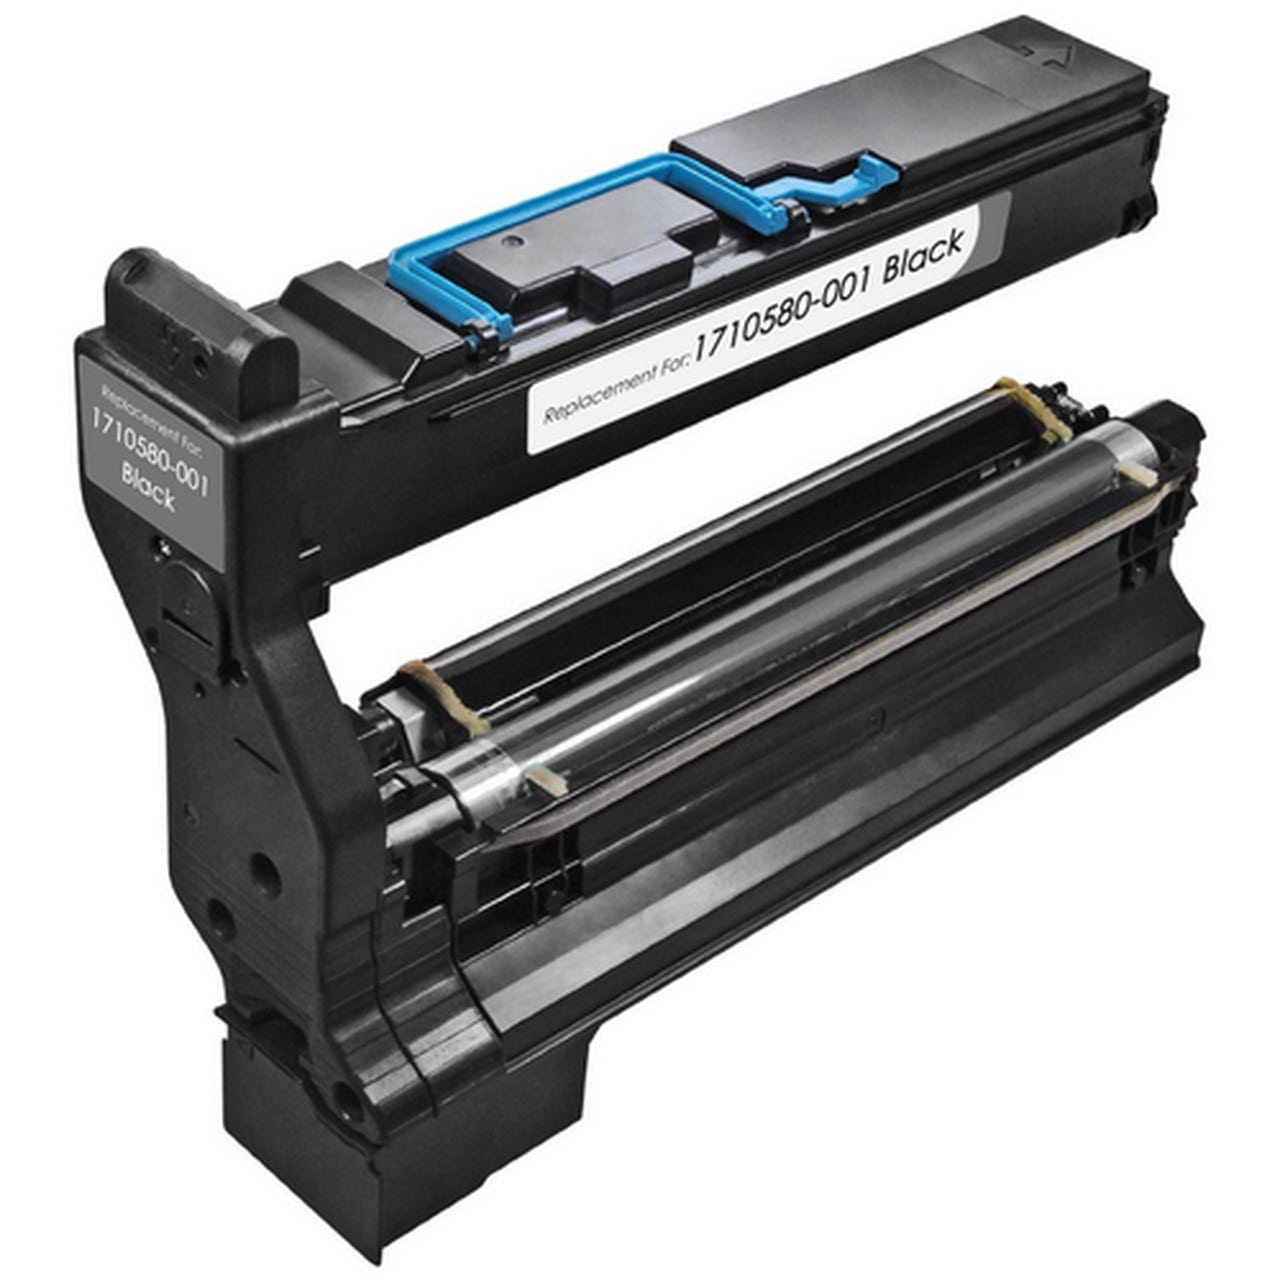 1710580-001 Toner Cartridge - Konica-Minolta Remanufactured (Black)